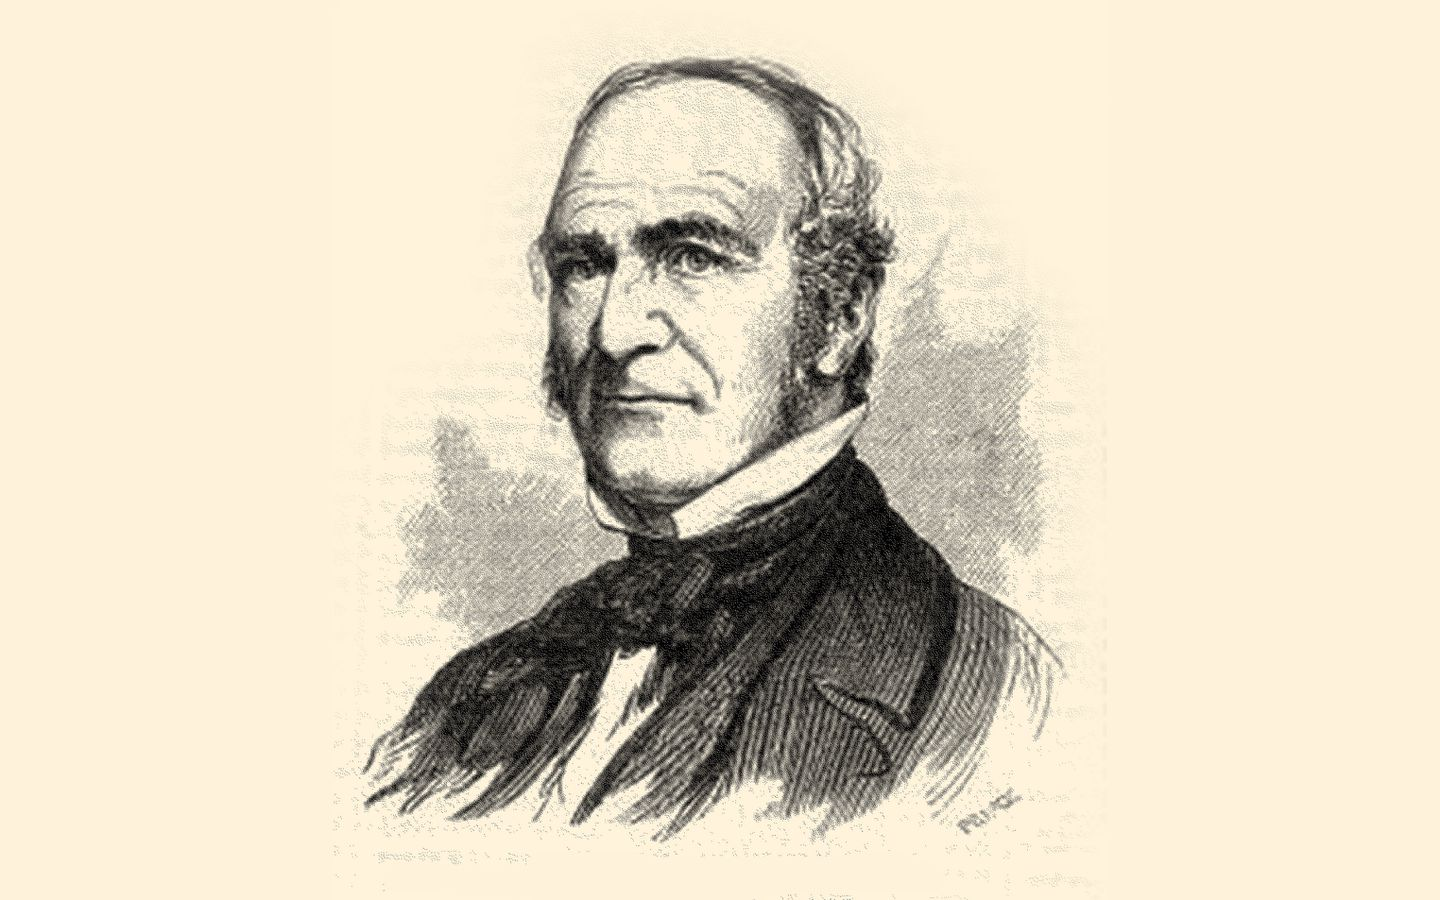 Detective Clapp in an 1857 issue of Ballou's Pictorial.